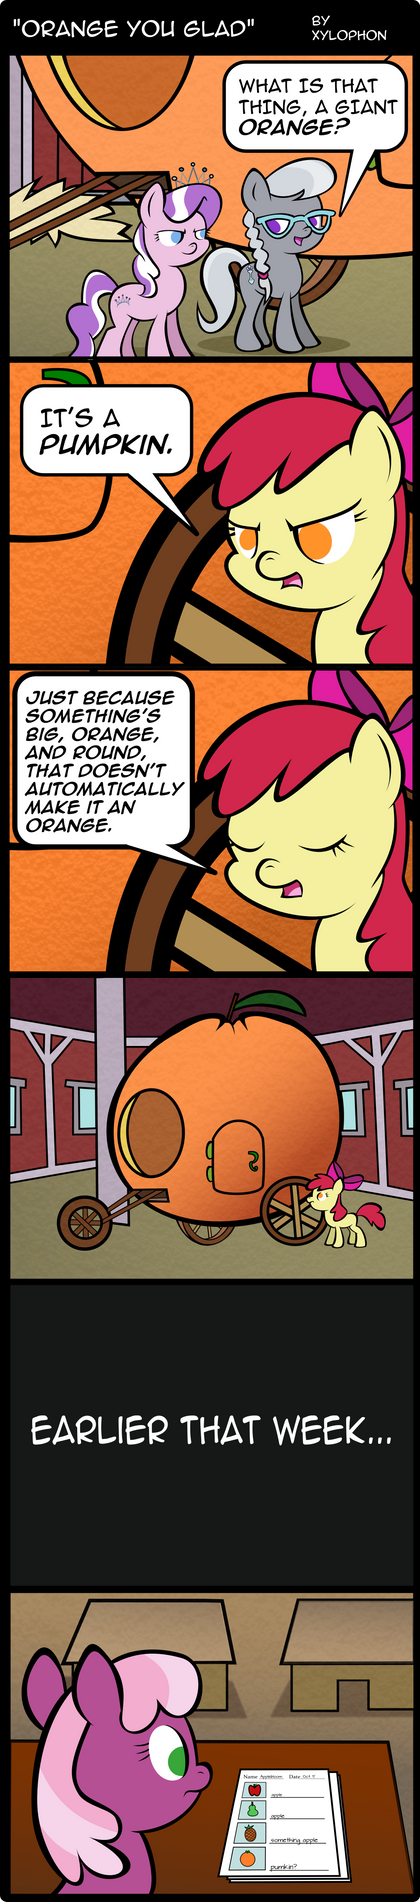 Orange you glad? by Xylophon